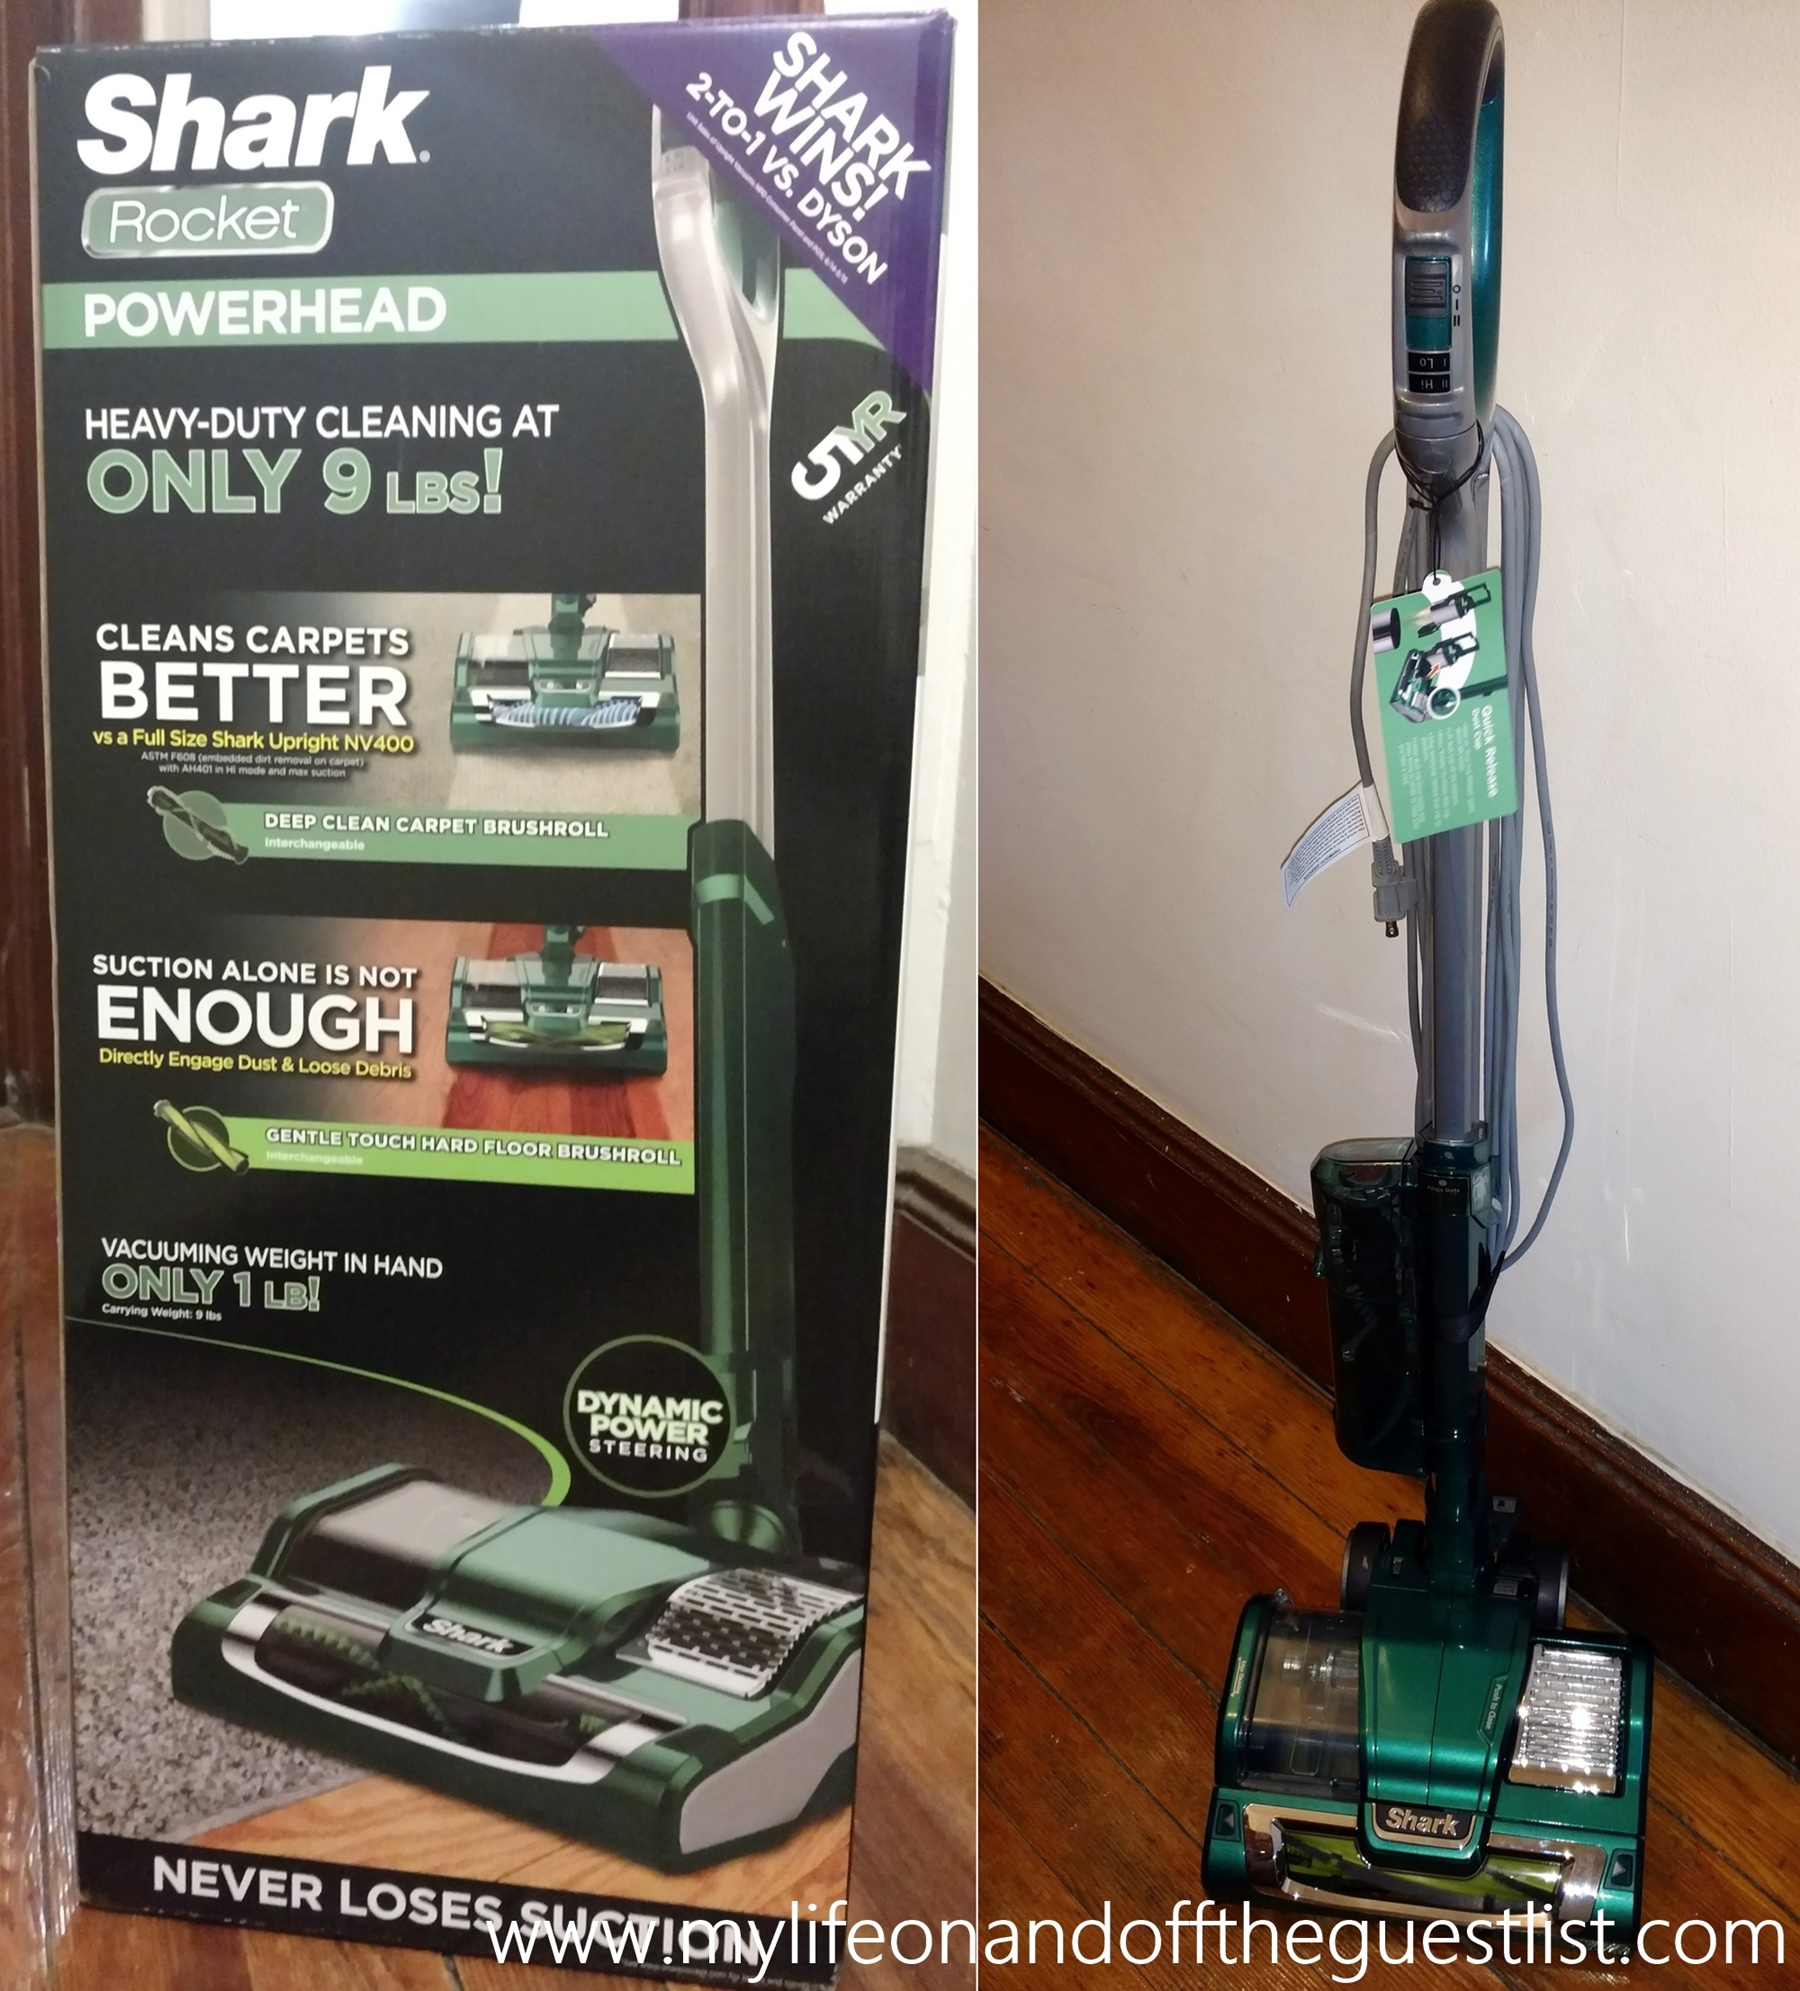 Spring Cleaning Shark Rocket Powerhead Vacuum